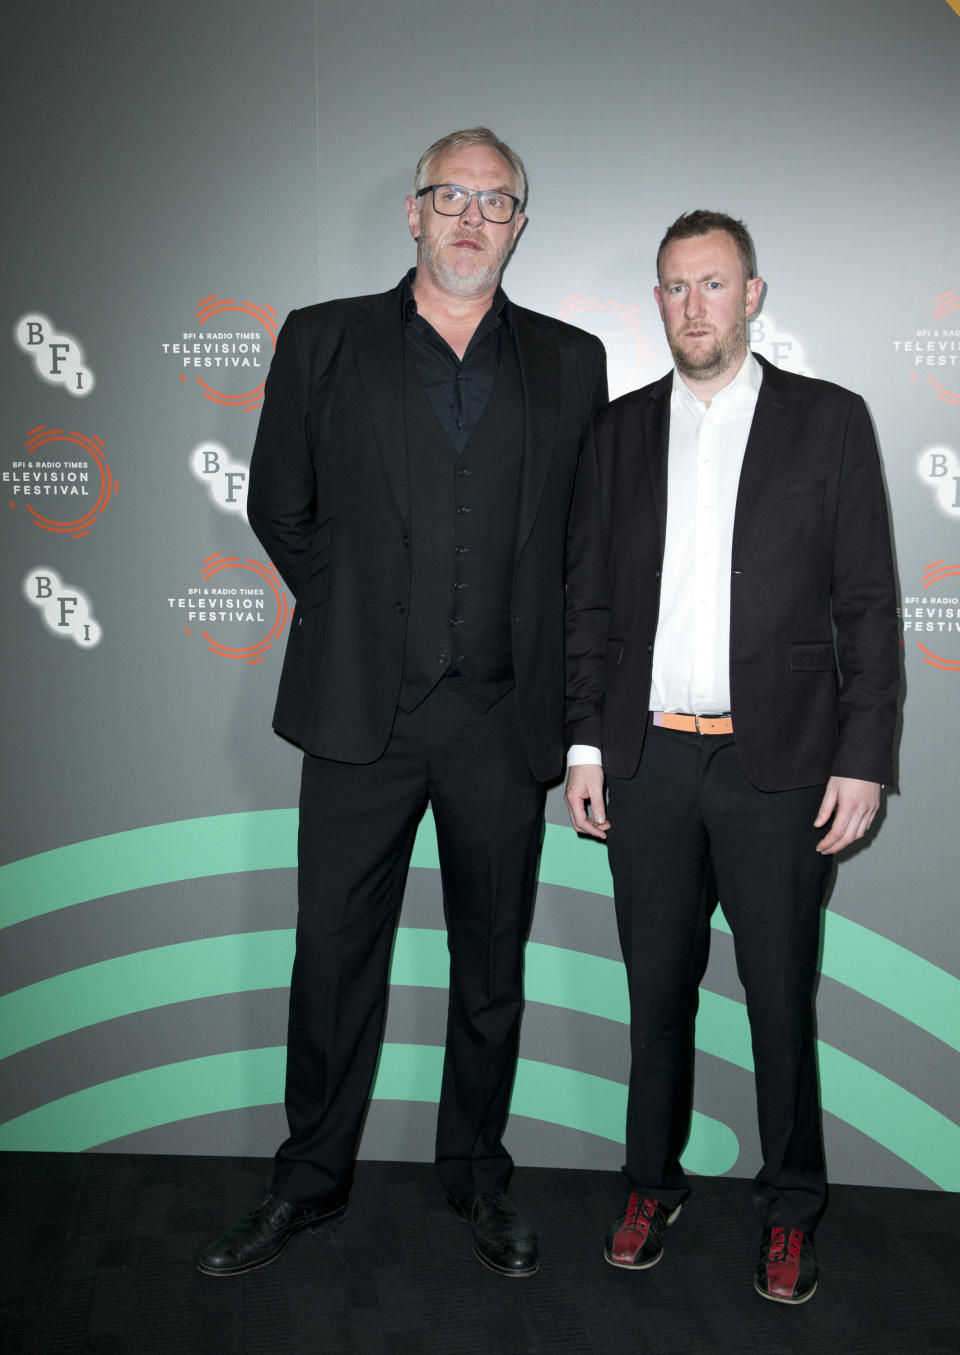 Greg Davies (left) and Alex Horne attending a photocall for 'Taskmaster' during the BFI and Radio Times Television Festival at the BFI Southbank, London.